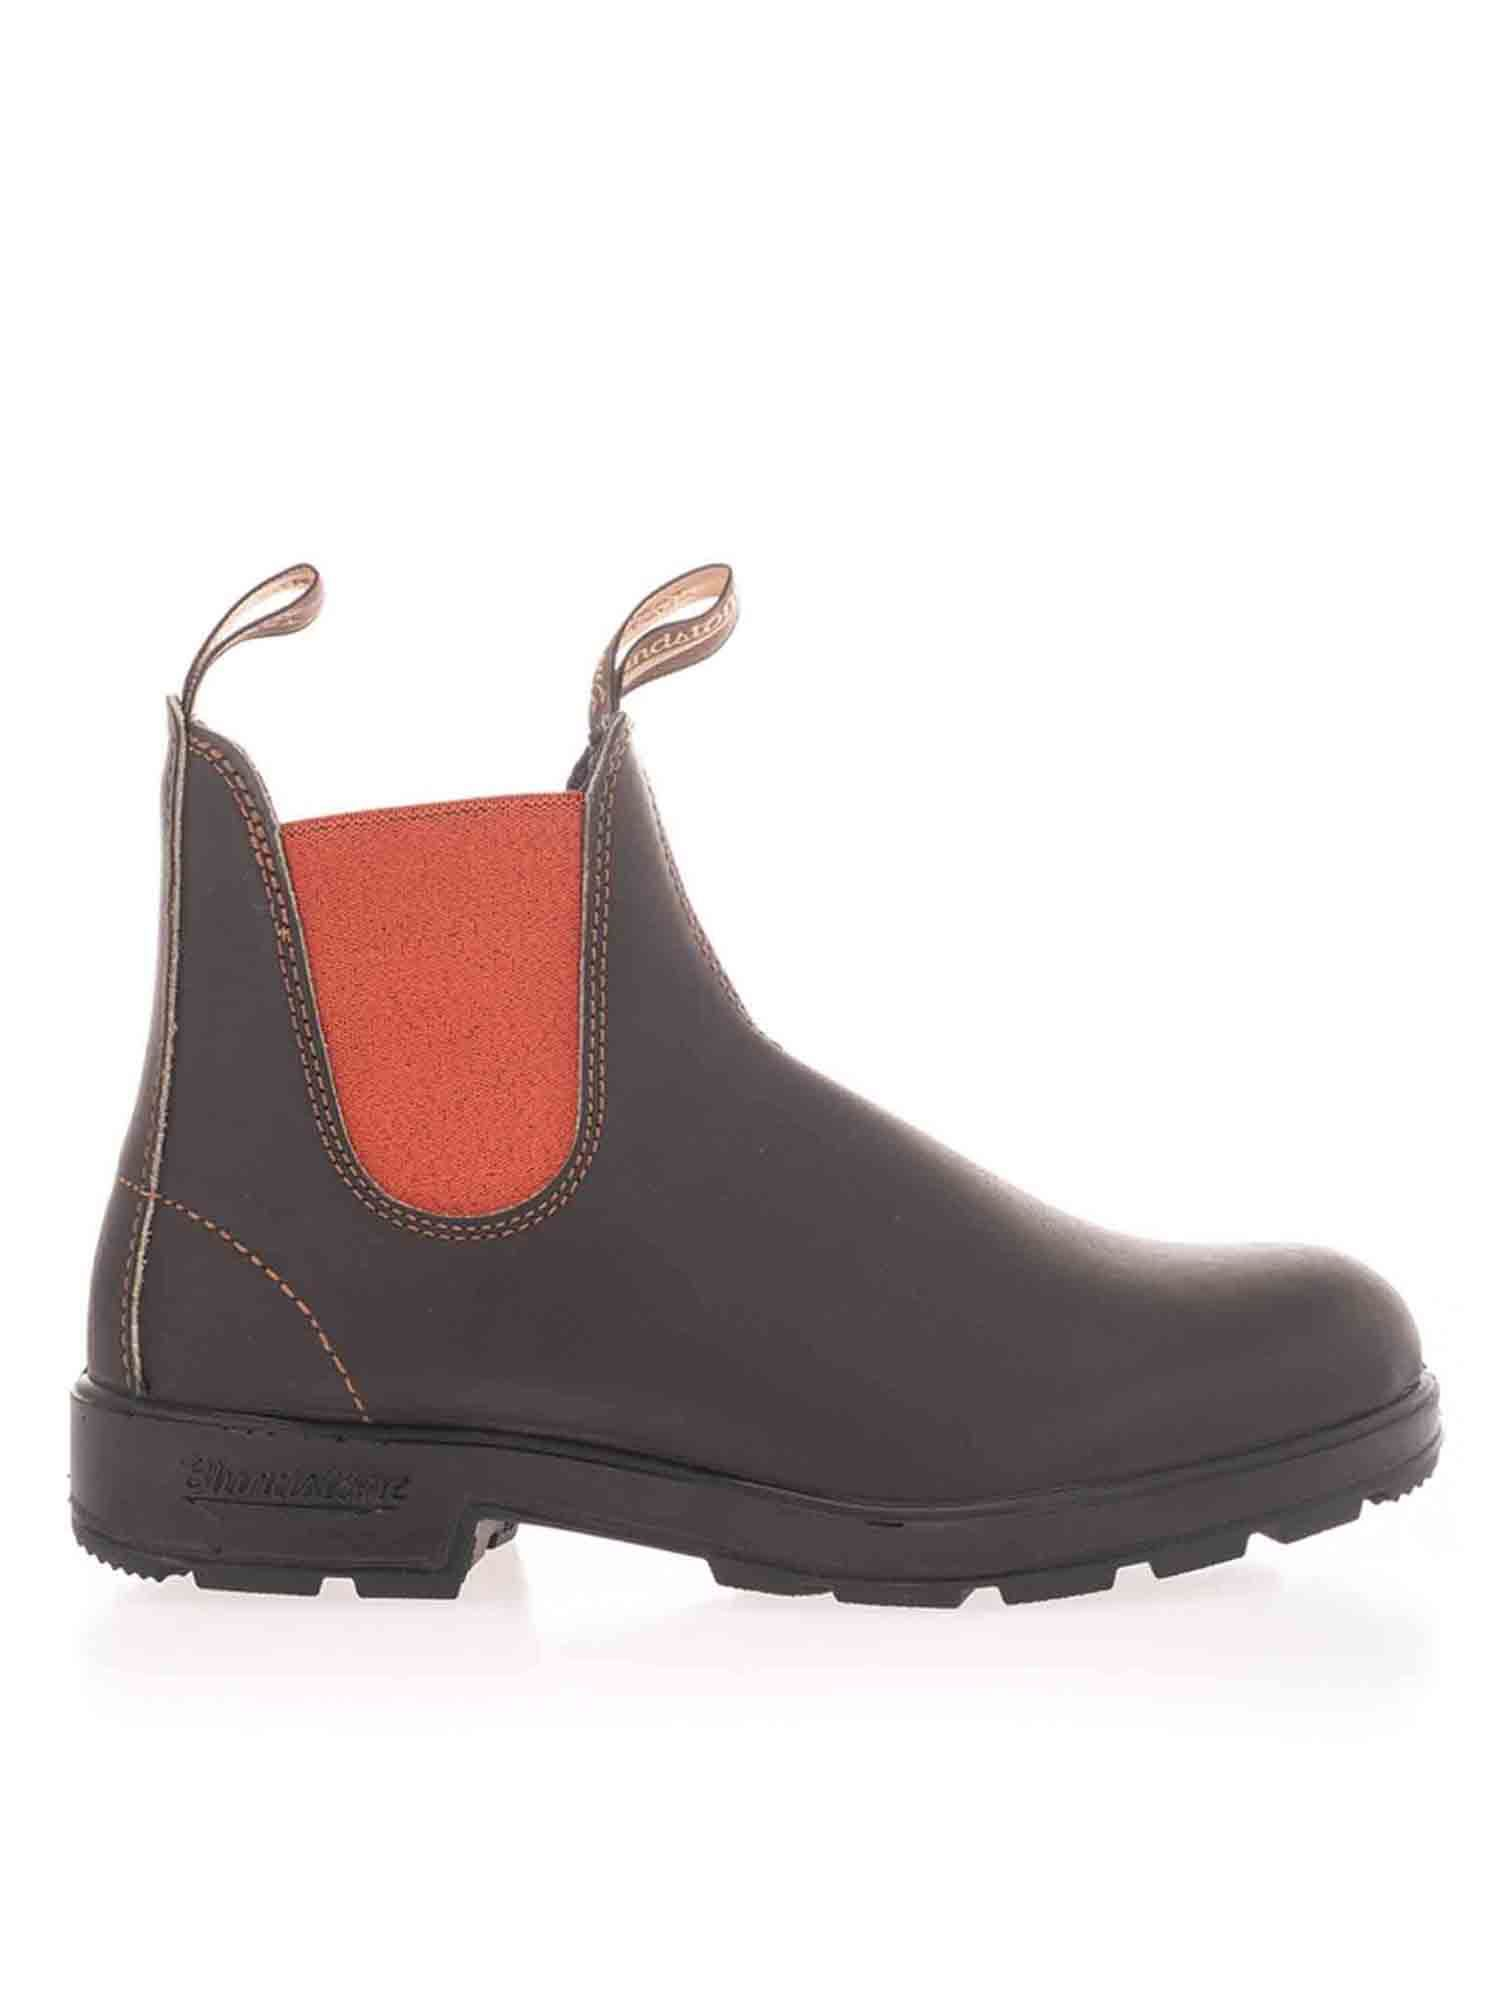 Blundstone ELASTICATED INSERTS ANKLE BOOTS IN BROWN